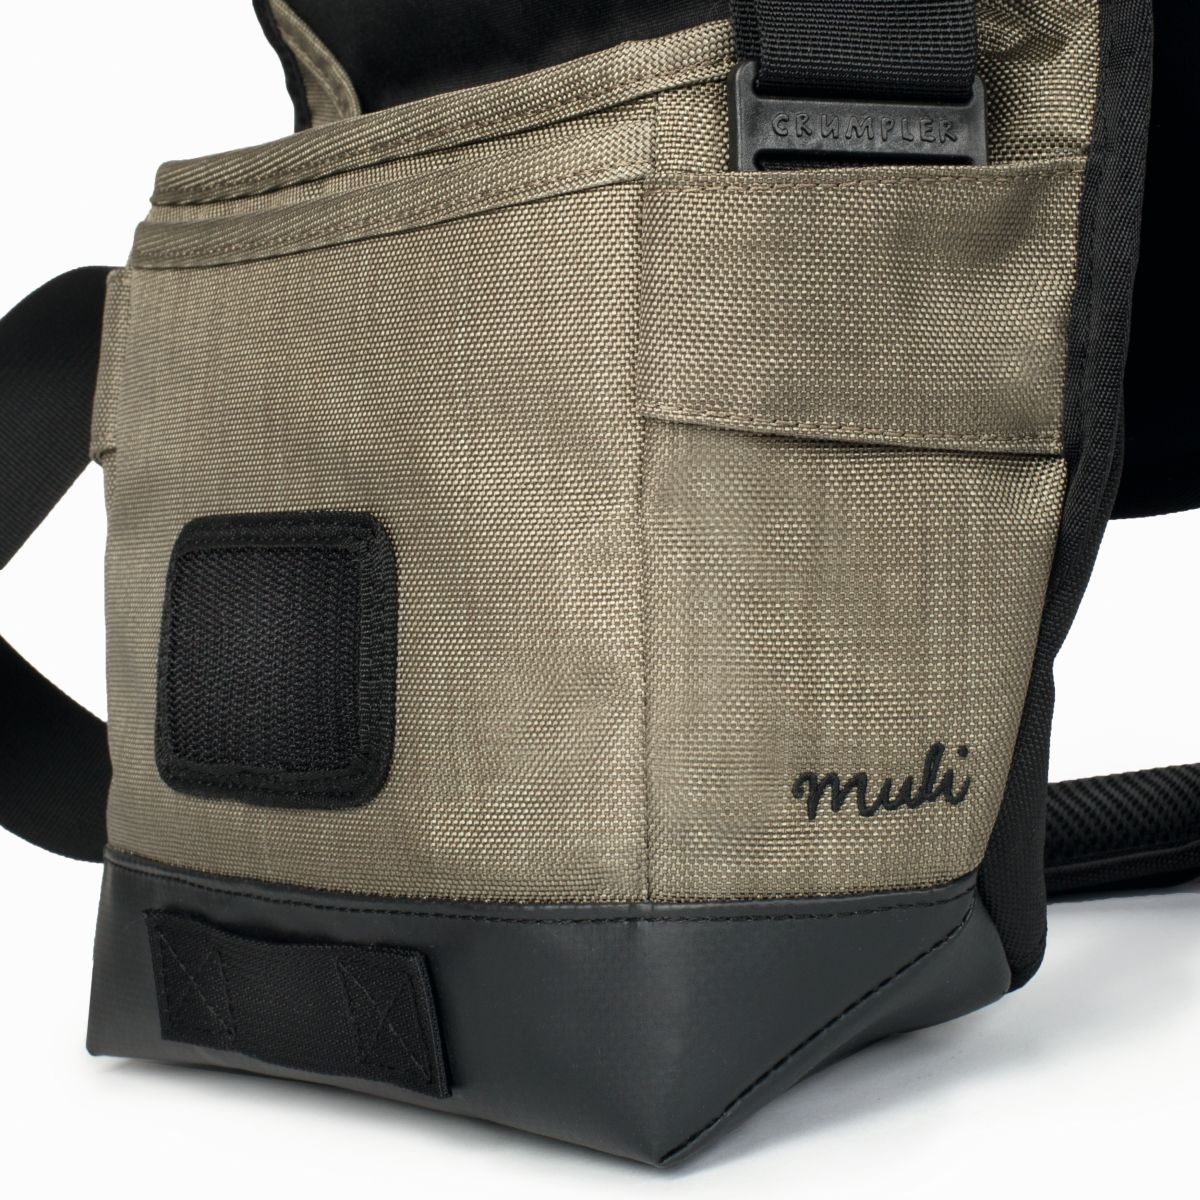 CRUMPLER-MULI-PHOTO-2500- Fotocredit: Crumpler